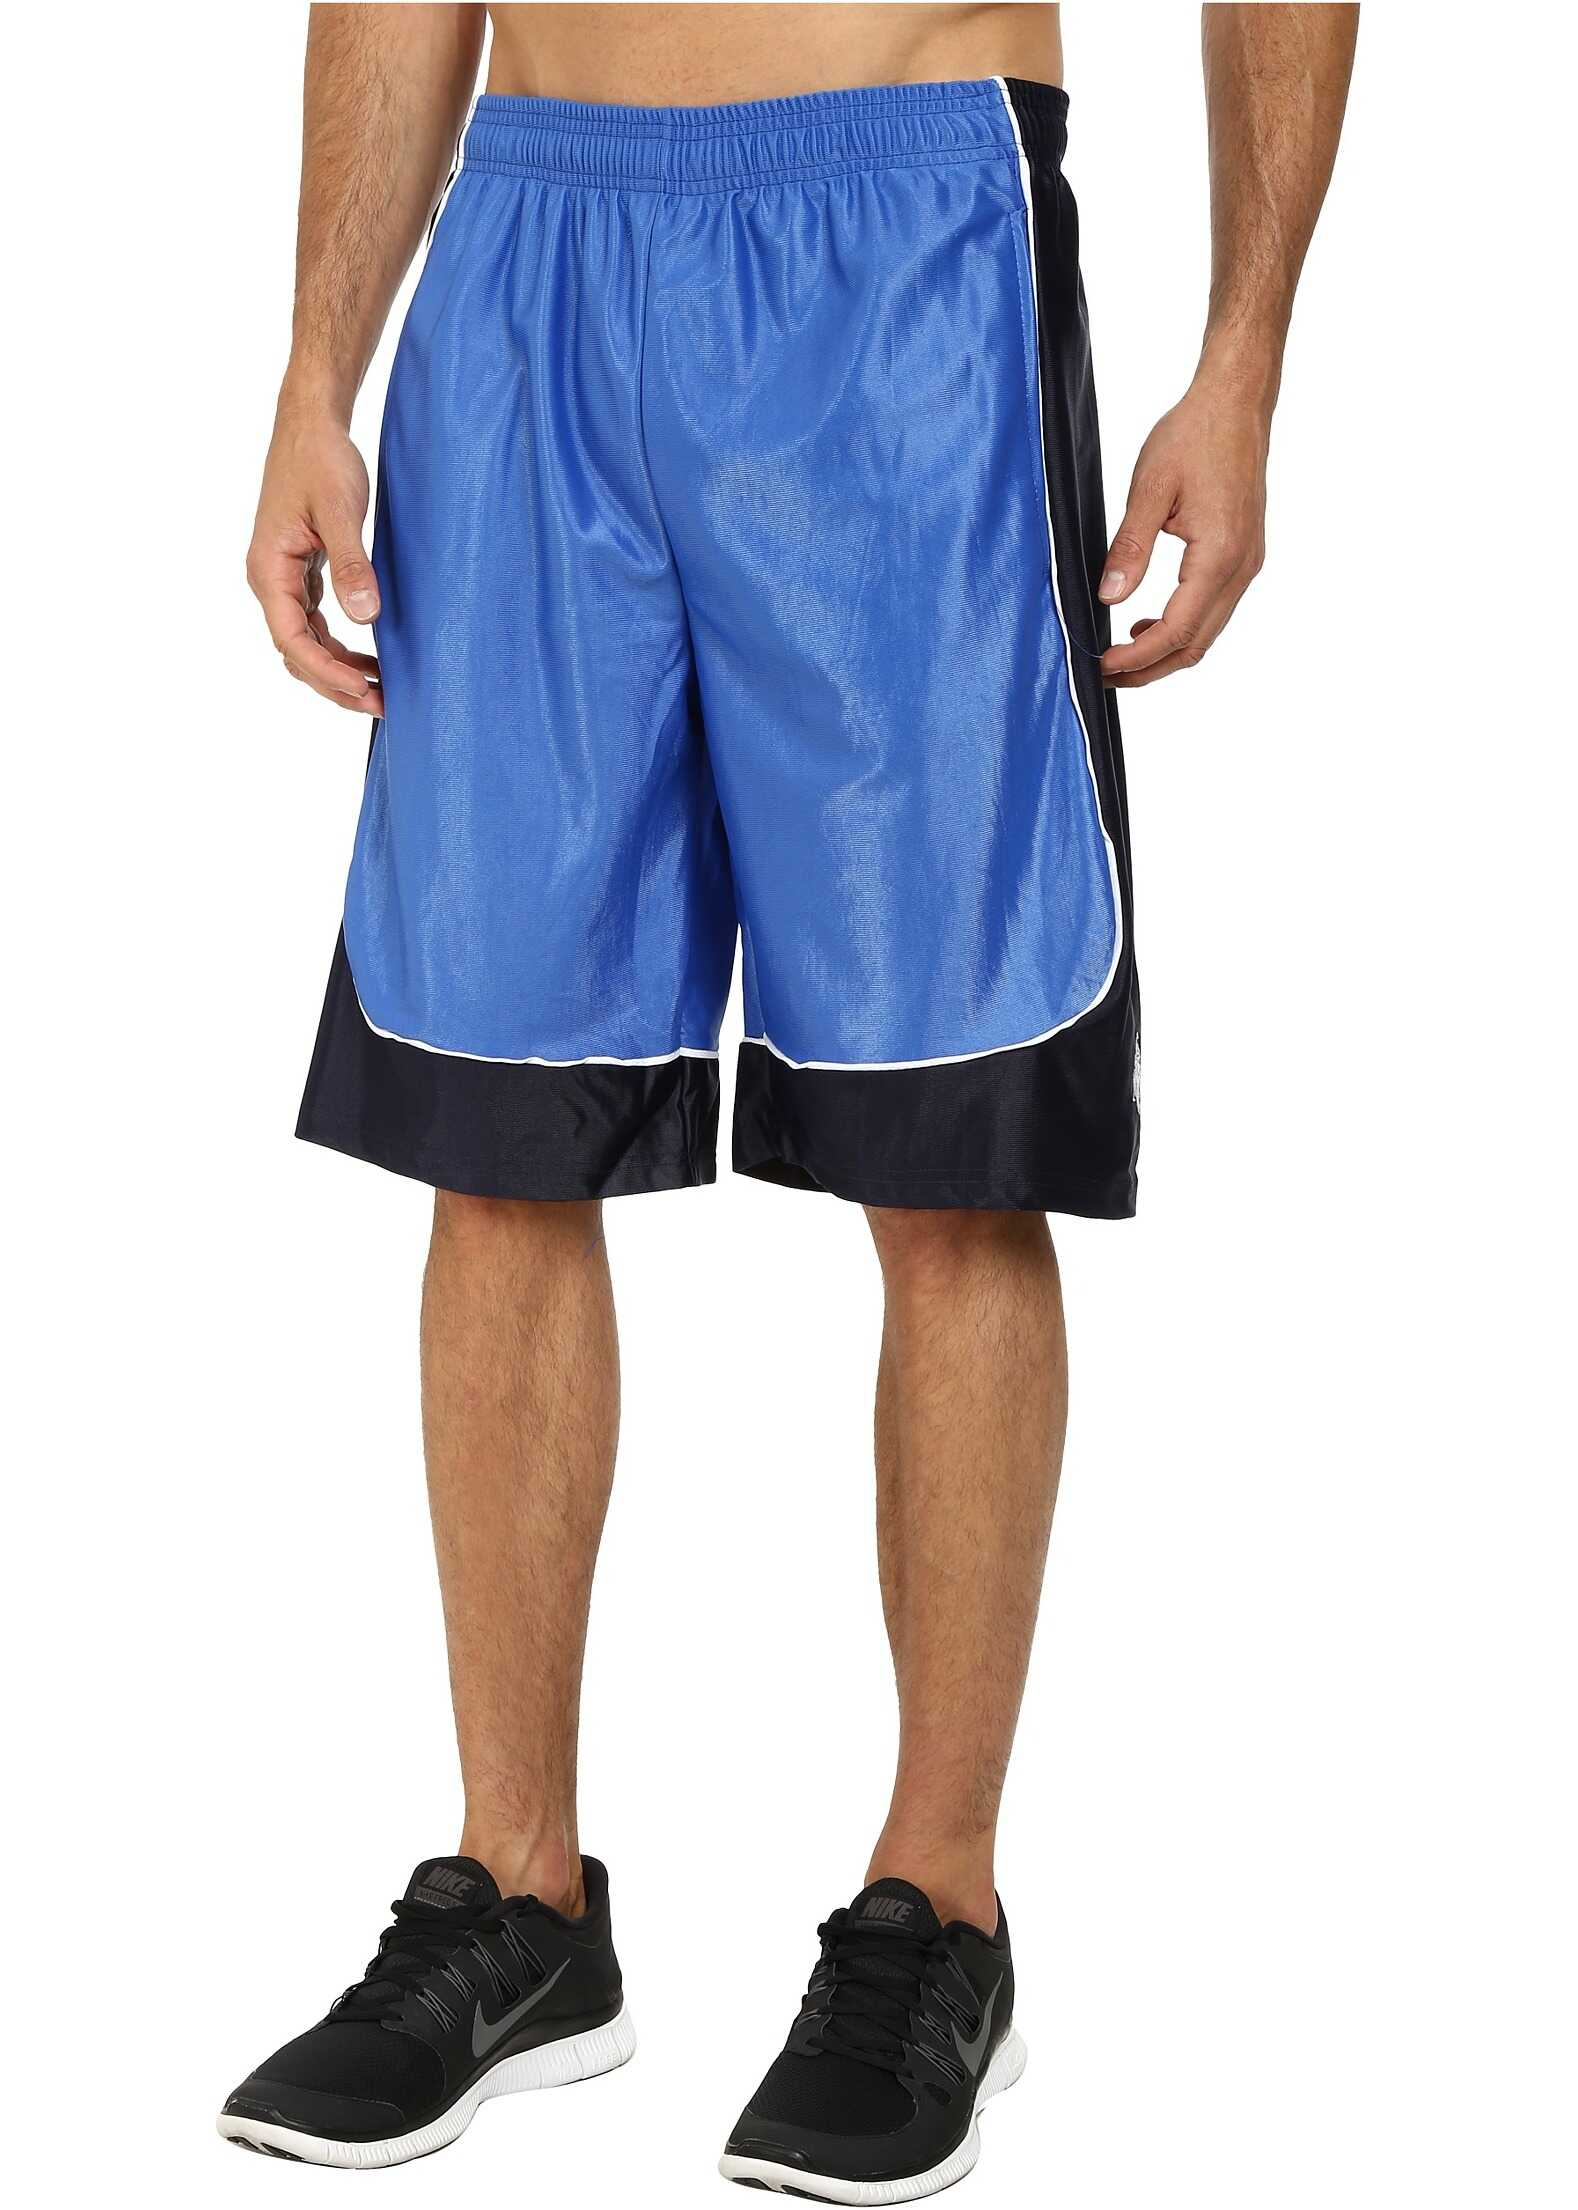 U.S. POLO ASSN. Athletic Shorts with Dazzle Side Panel China Blue